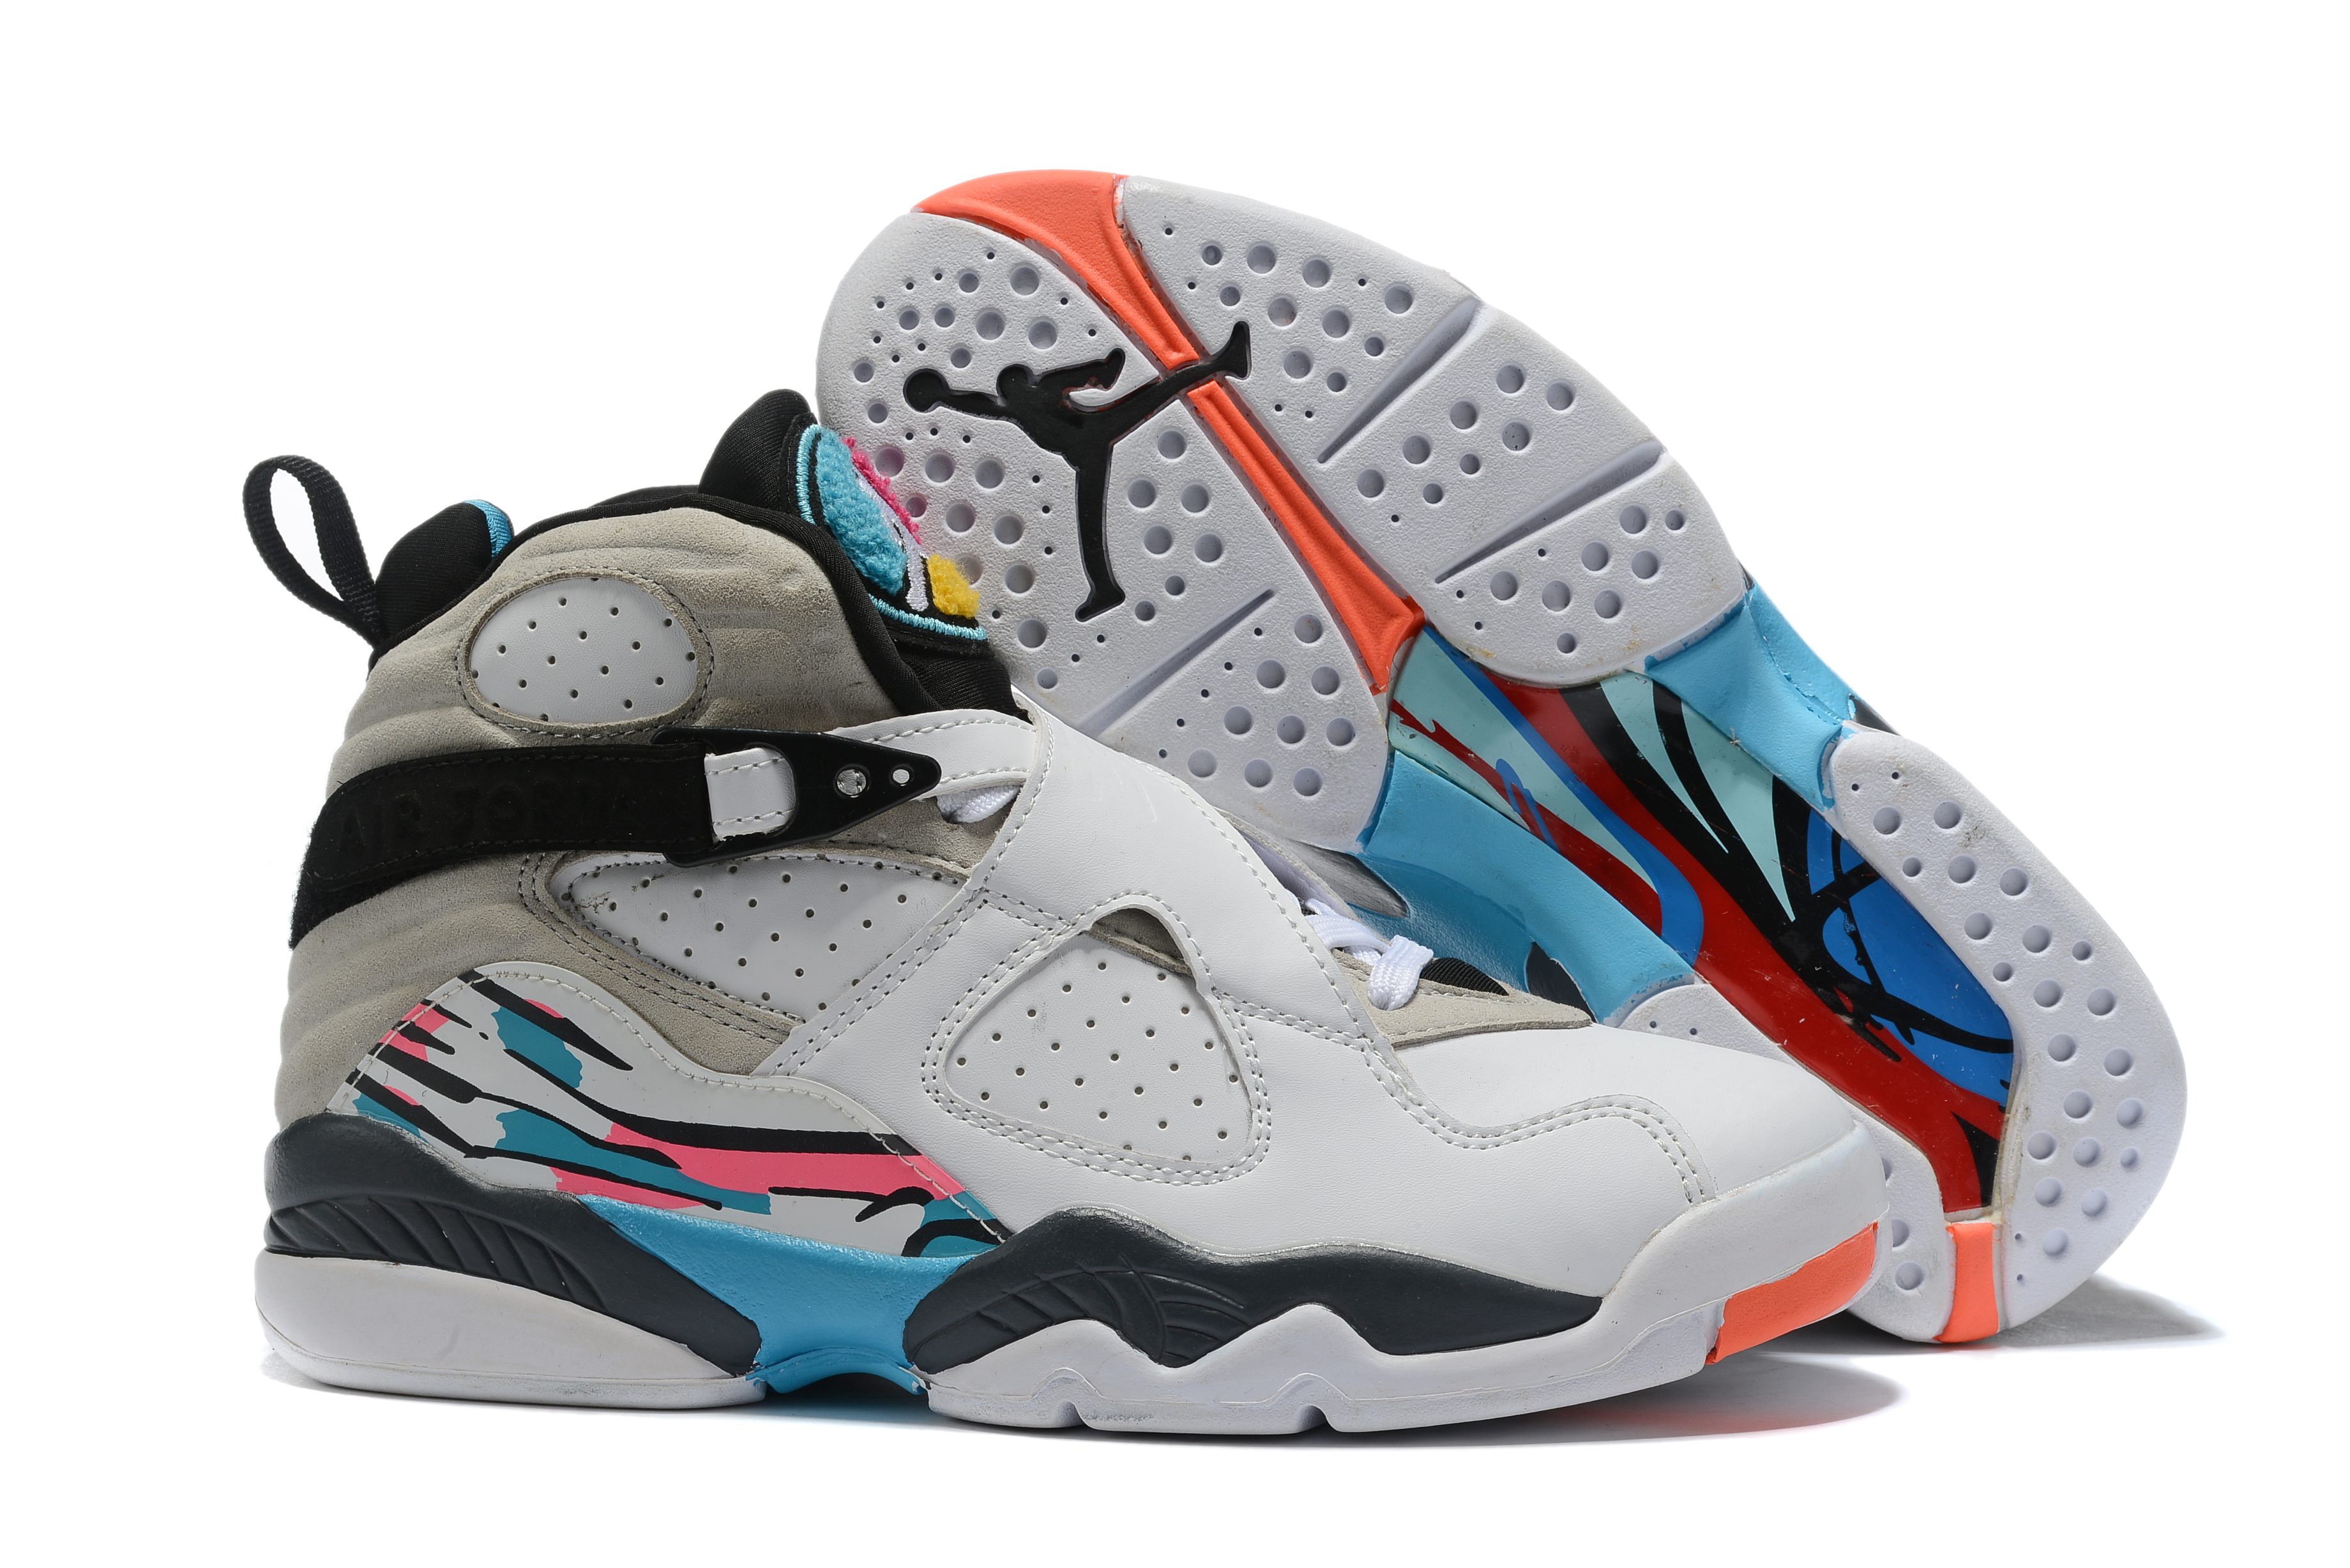 2019 Air Jordan 8 White Grey Black Jade Orange Shoes